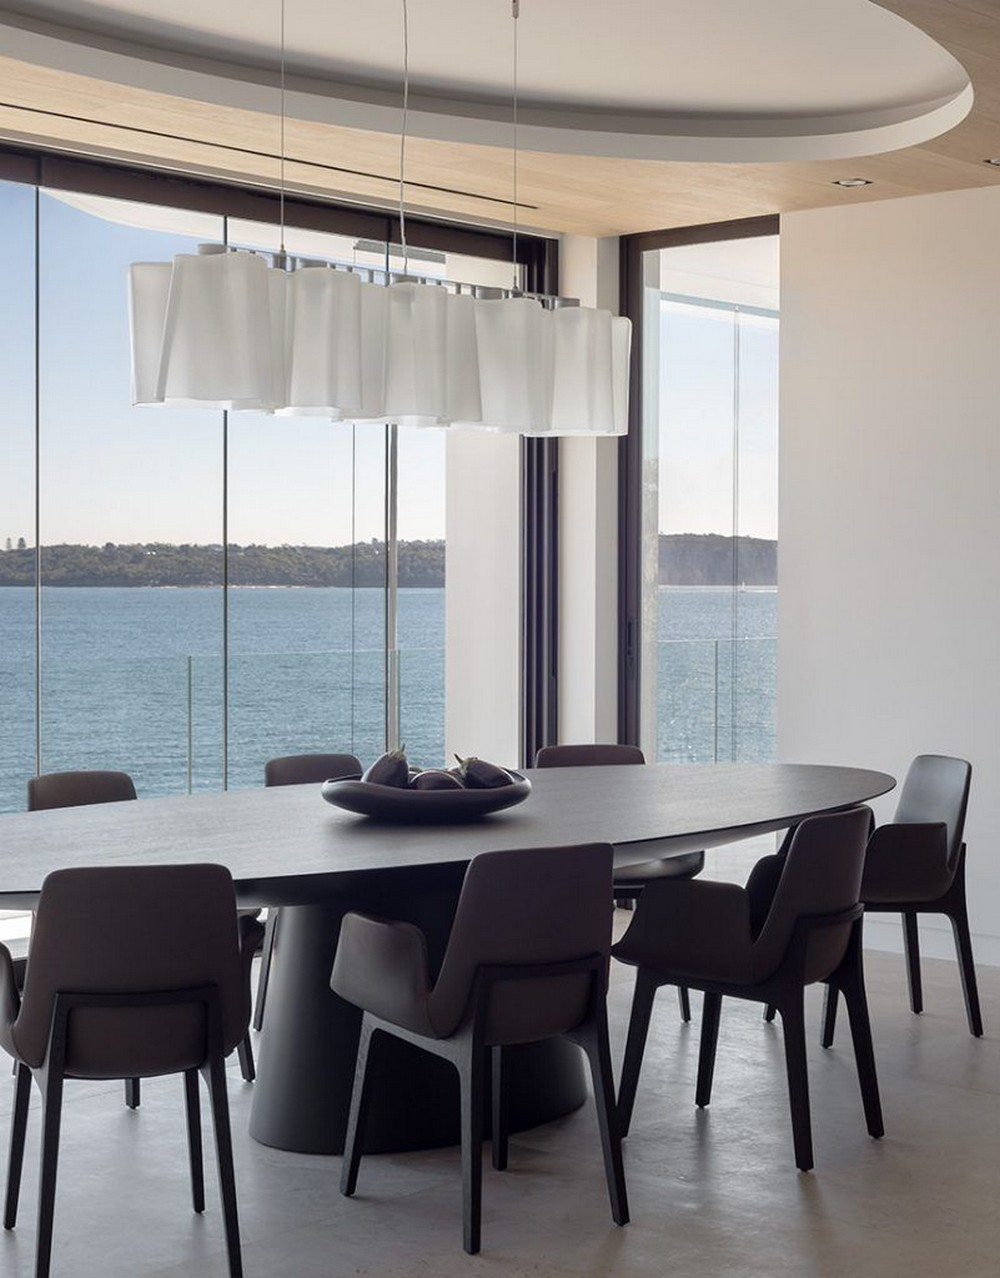 Hare + Klein: Contemporary Dining Rooms From Australia hare + klein Hare + Klein: Contemporary Dining Rooms From Australia 3 pinteresdt